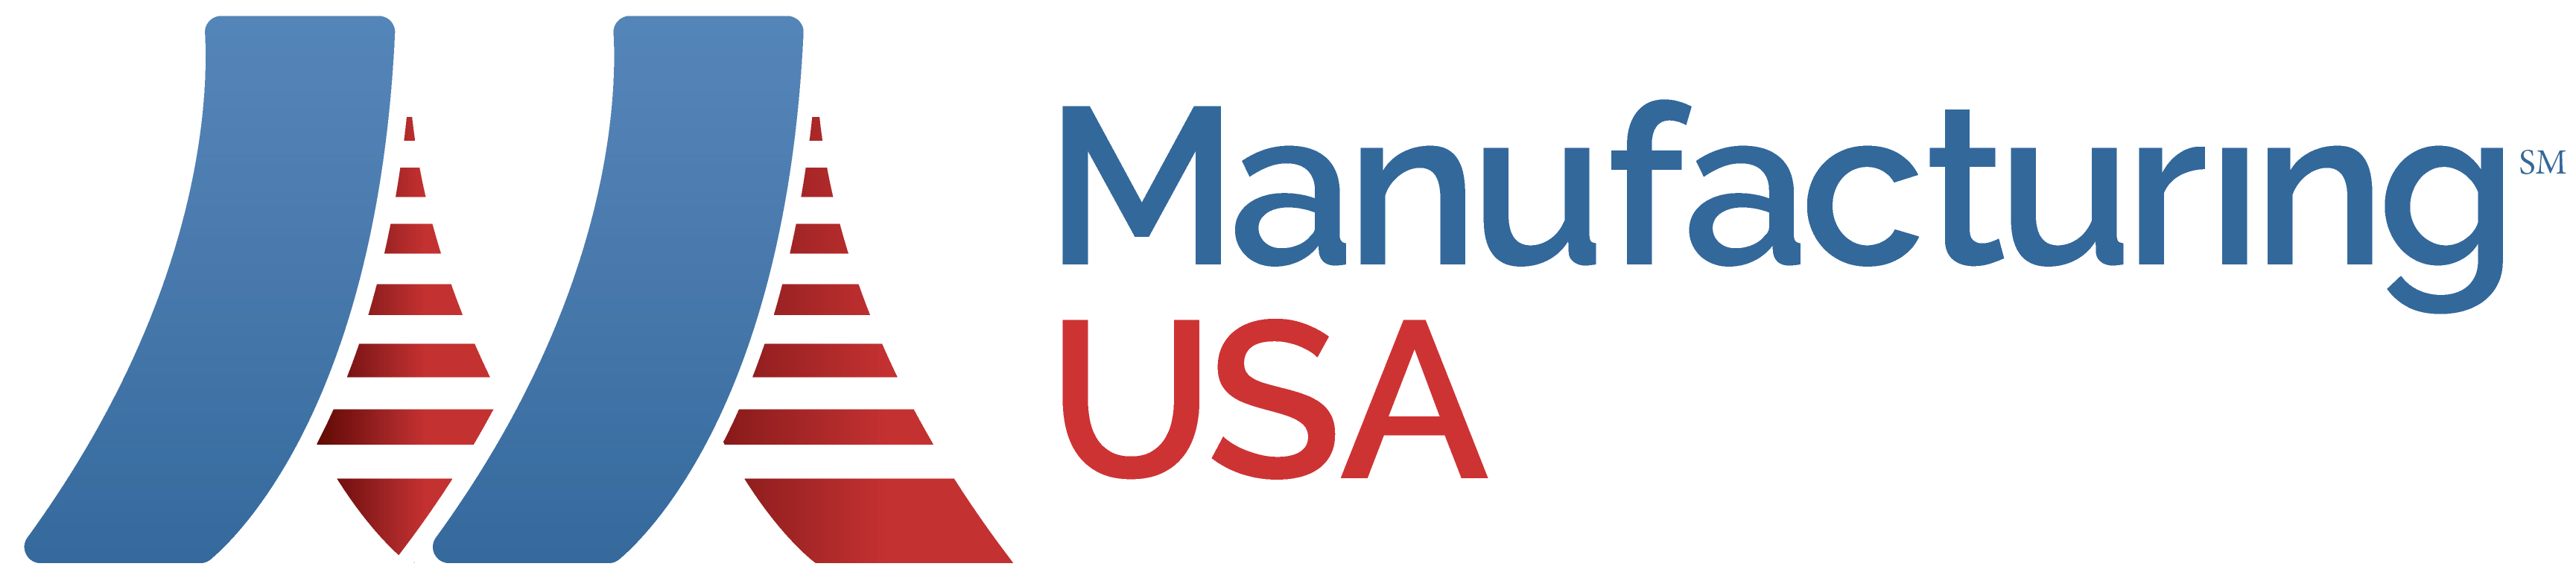 Manufacturing USA logo